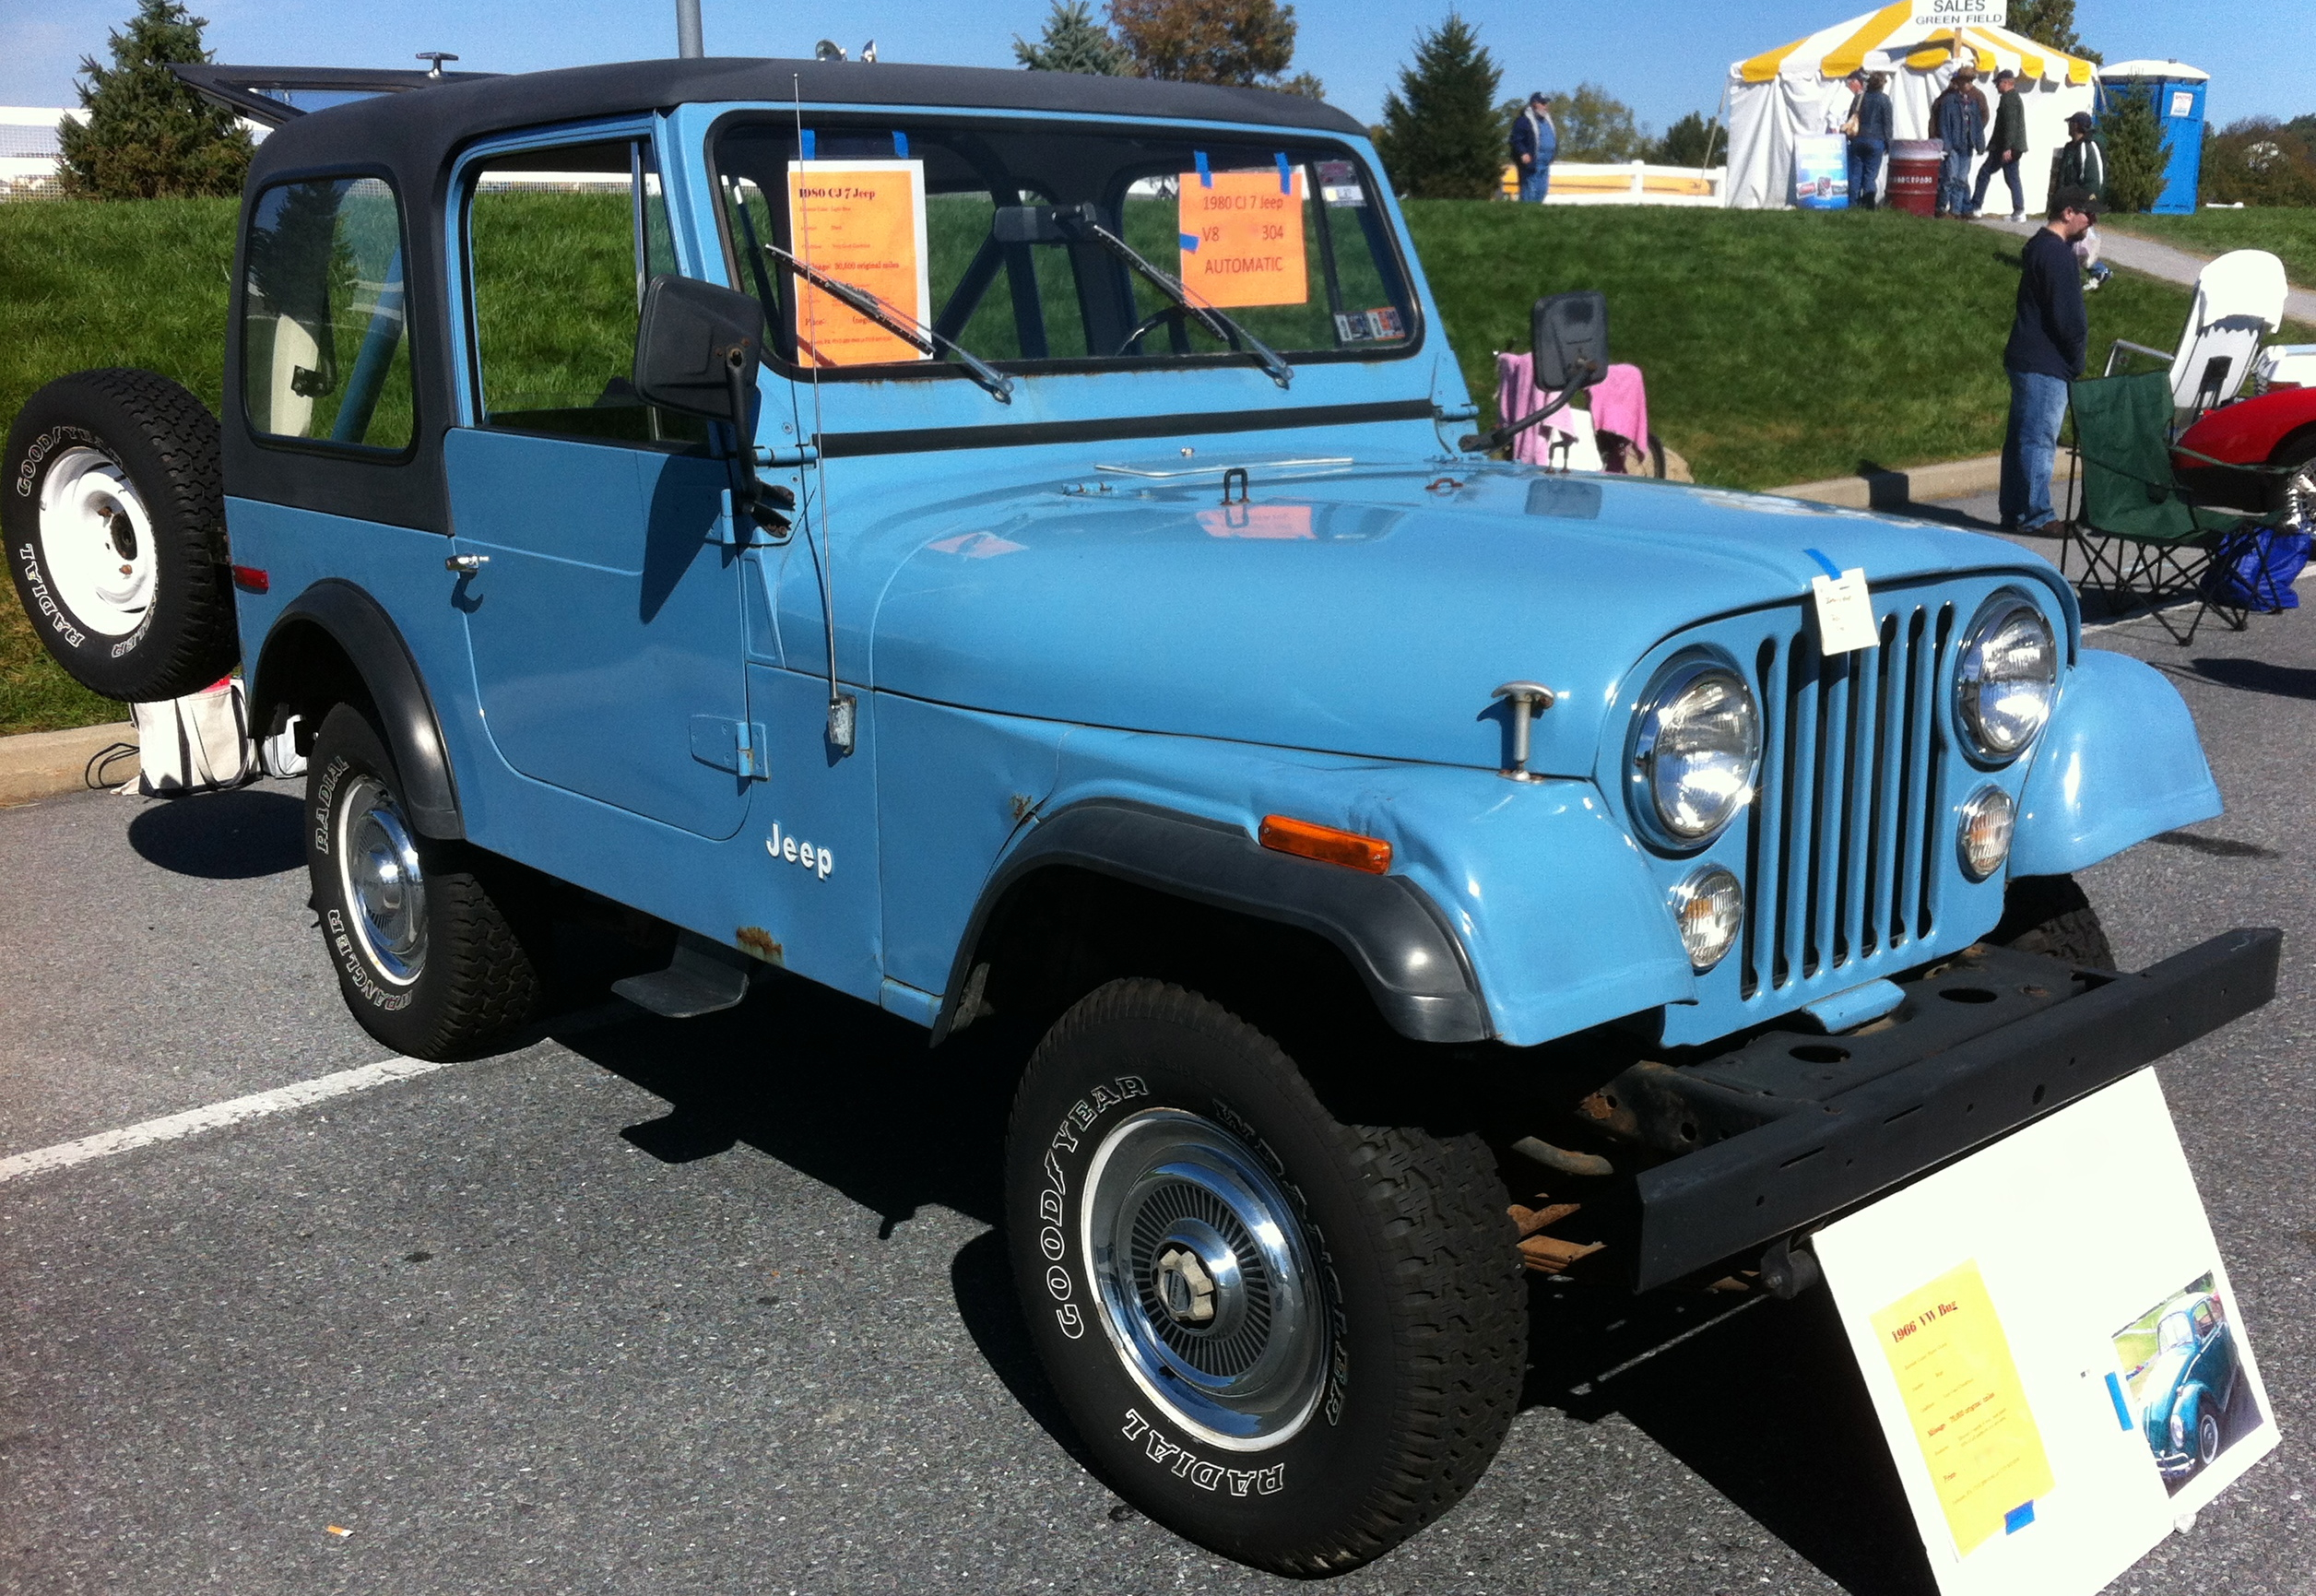 file:1980 jeep cj-7 blue v8 automatic hershey 2012 - wikimedia